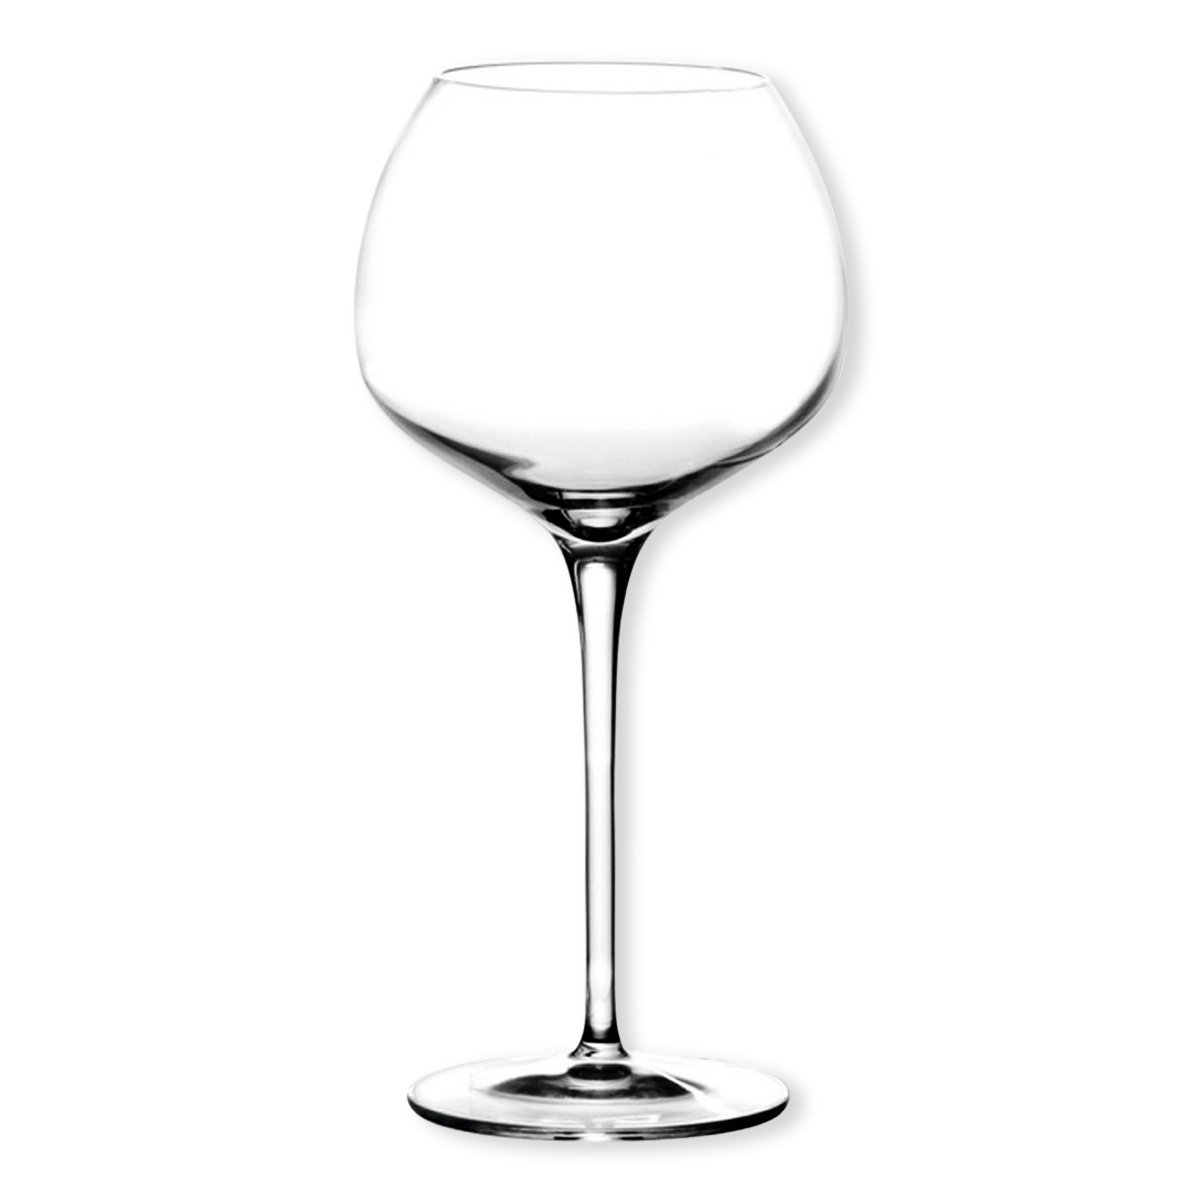 Luigi Bormioli Vinoteque Super Wine Glasses 21oz / 600ml - x6 - Red Wine Glasses, Vinoteque Wine Glasses, Wine Tasting